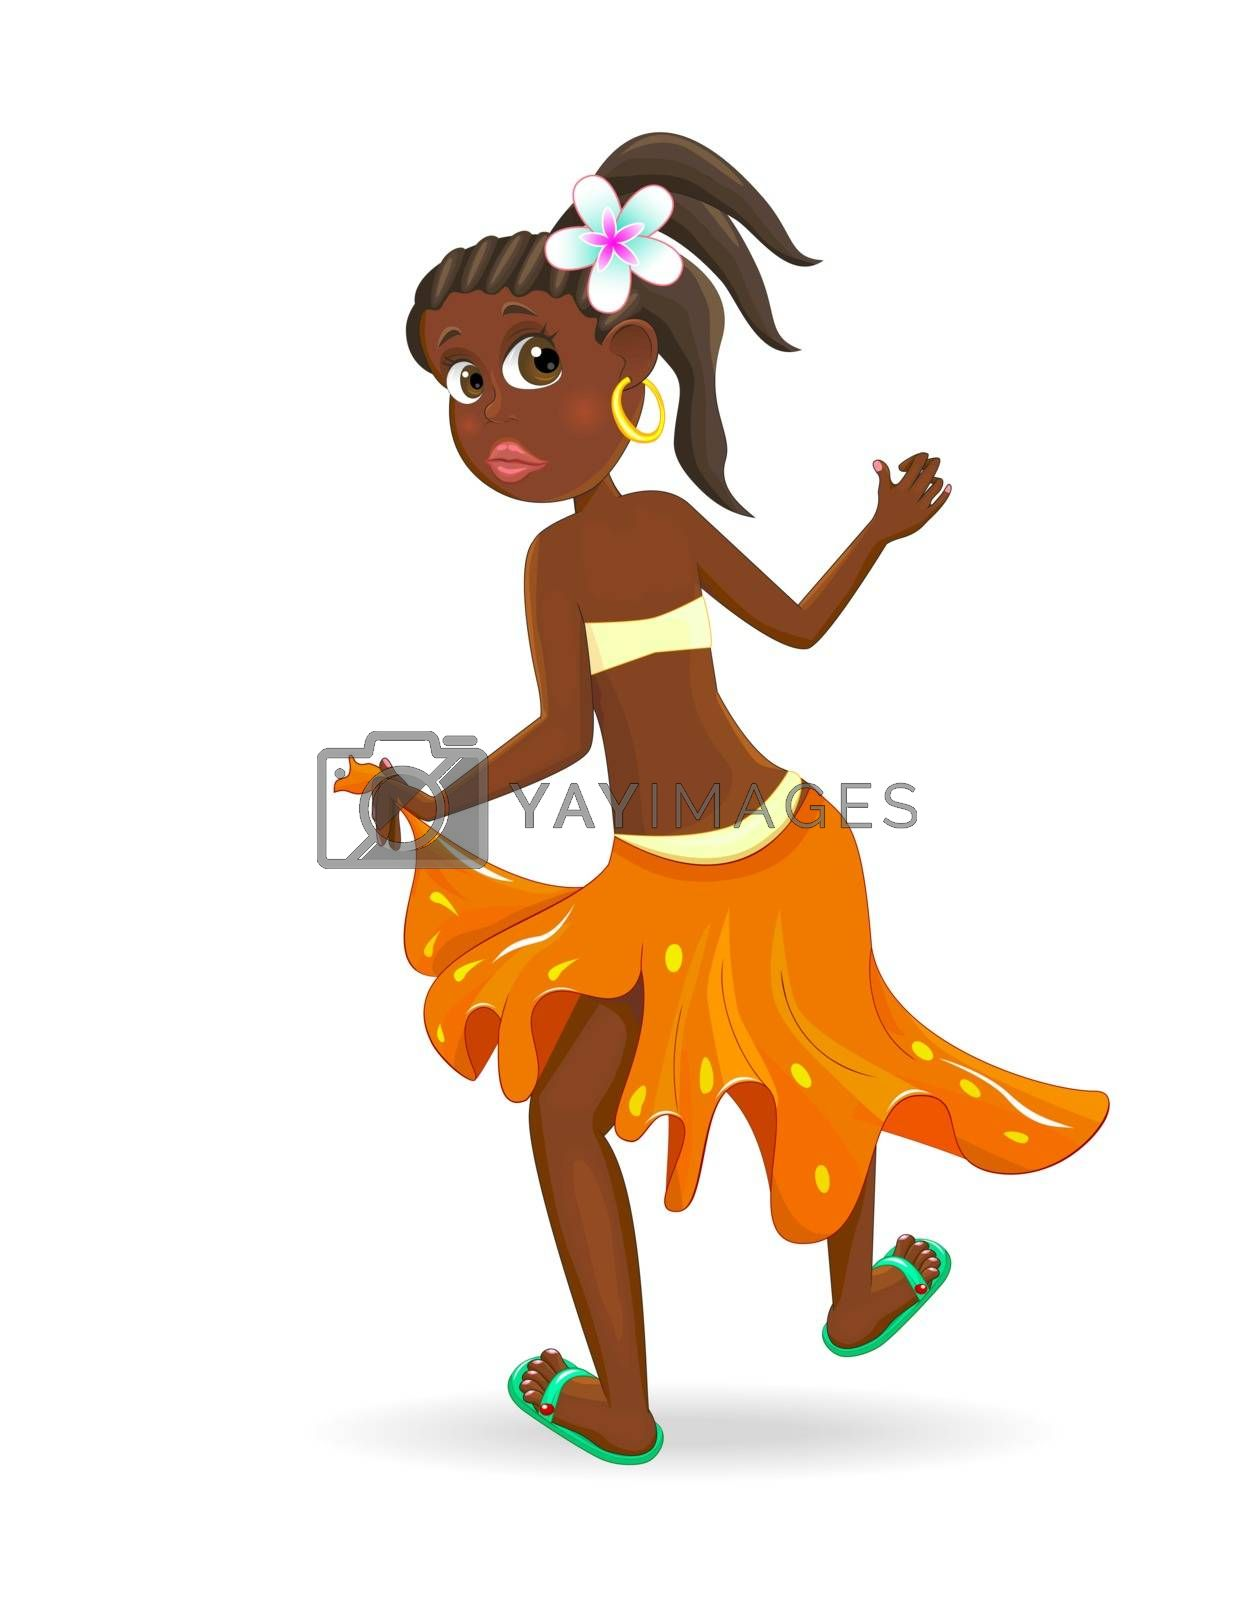 Dancing little African girl. Little girl is dancing on a white background.